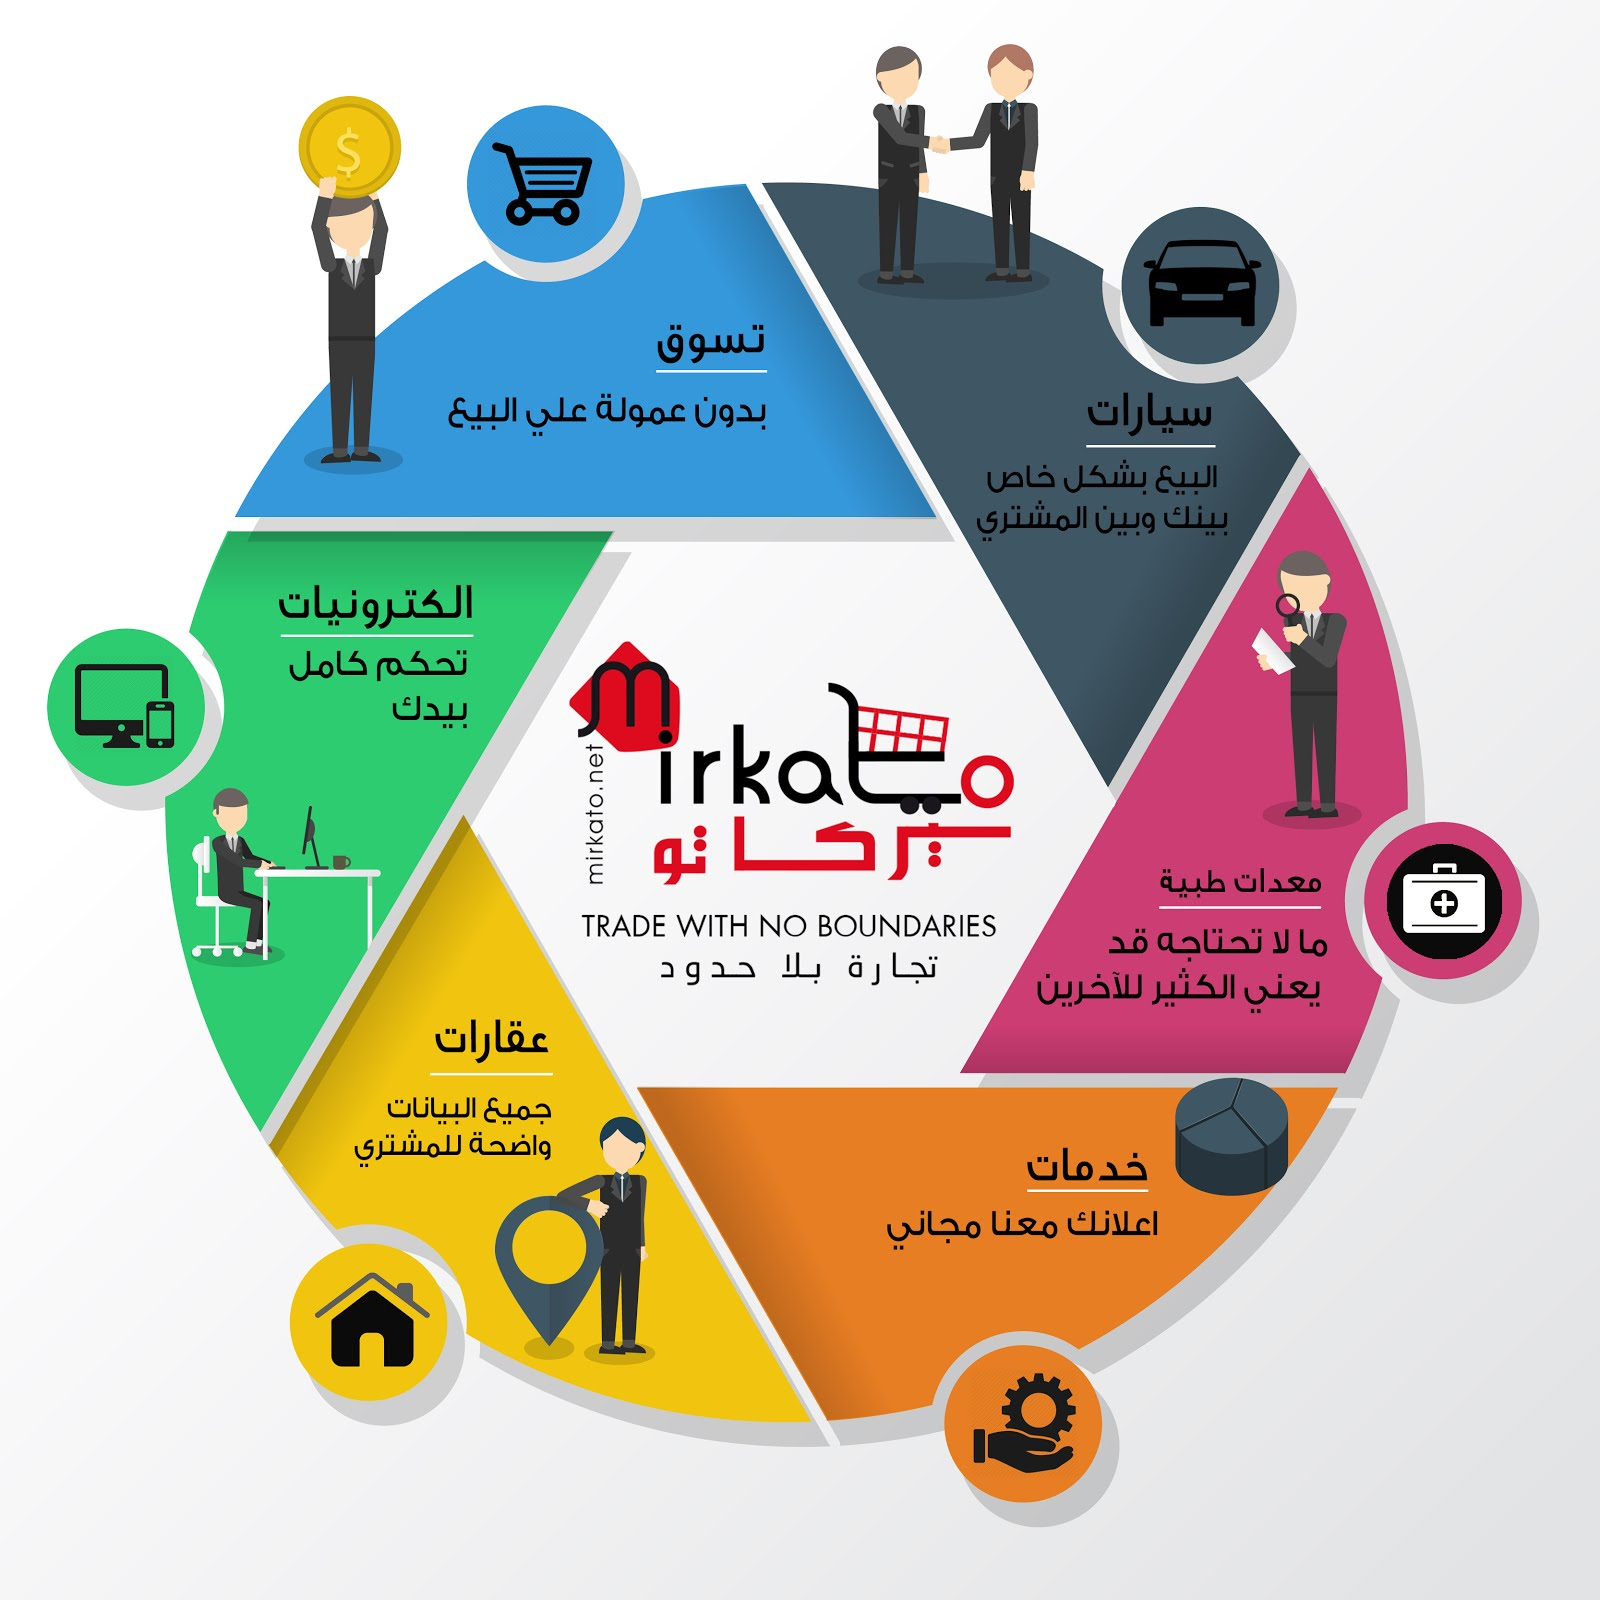 Mirkato e-commerce